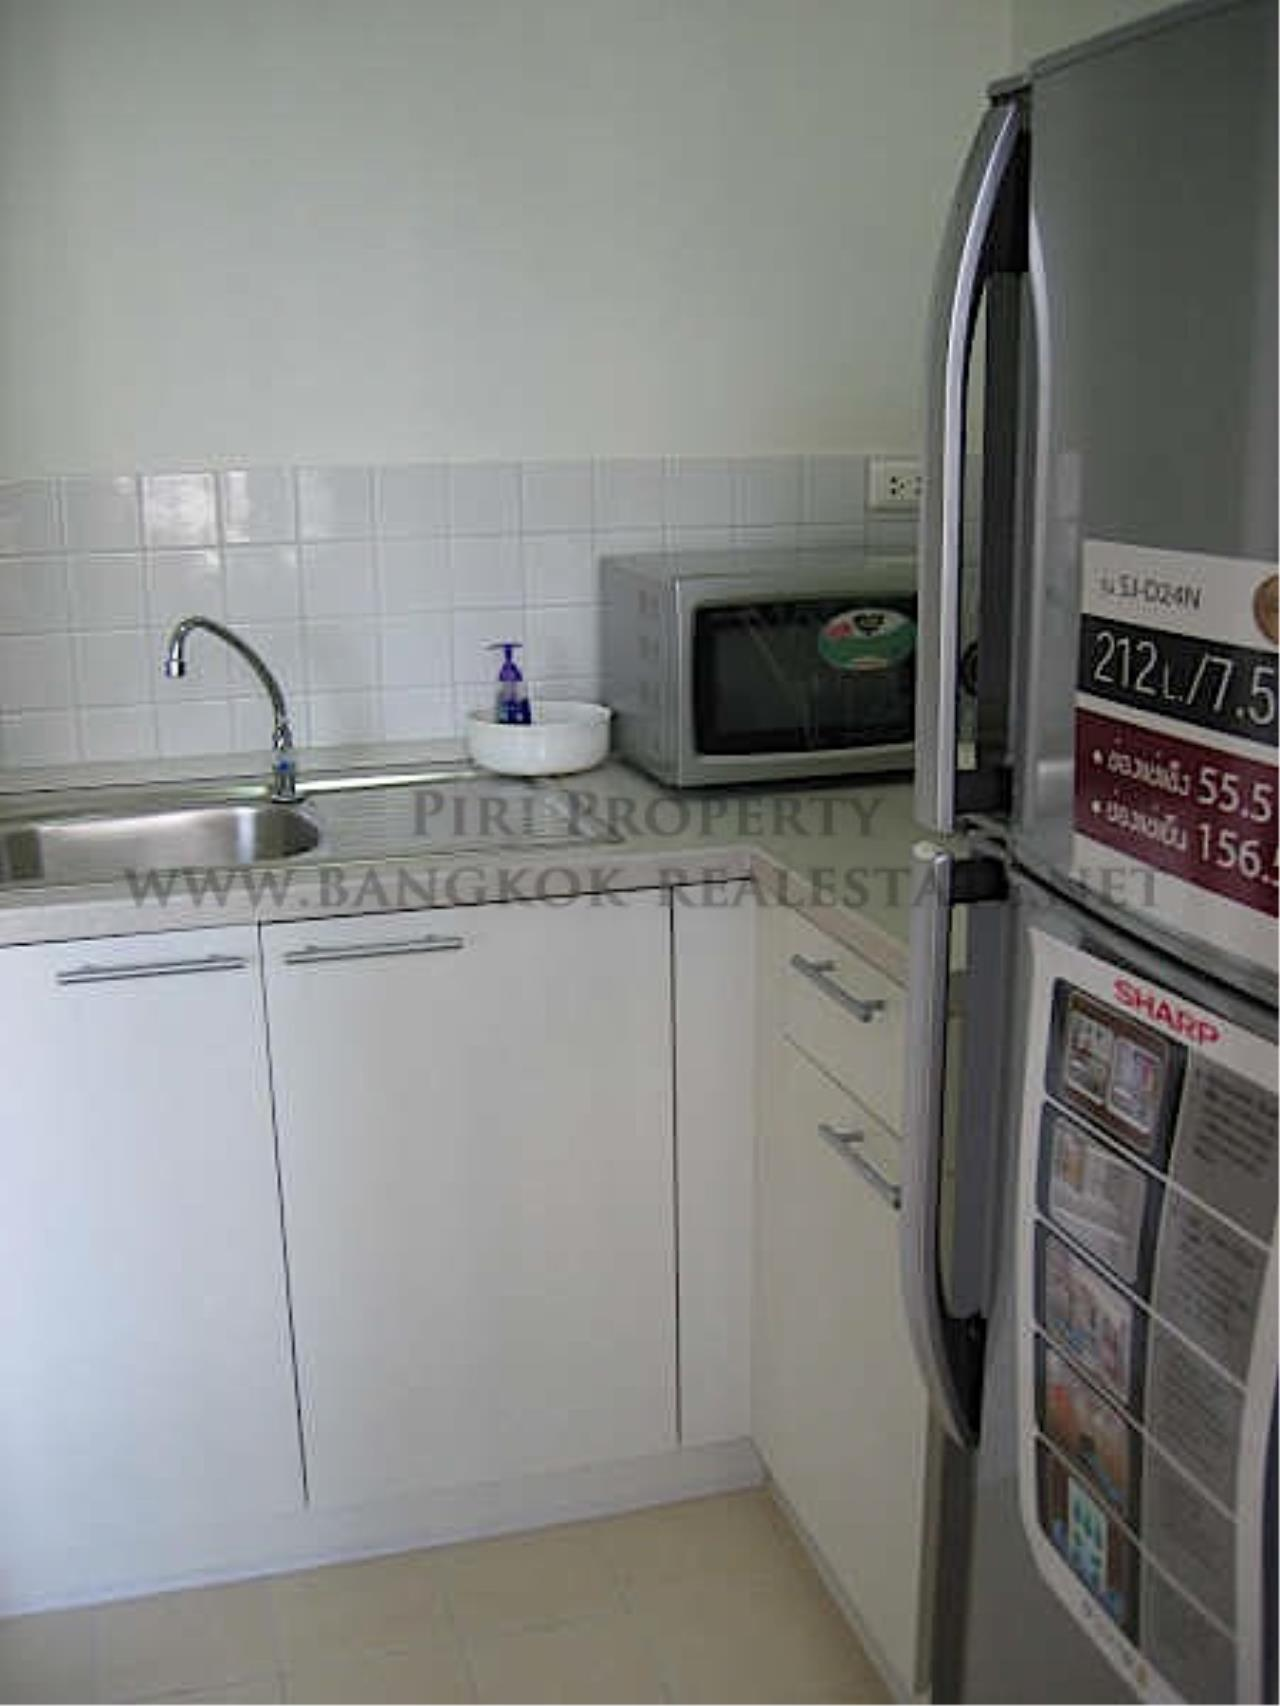 Piri Property Agency's Condo One X - Nicely furnished One Bedroom 5